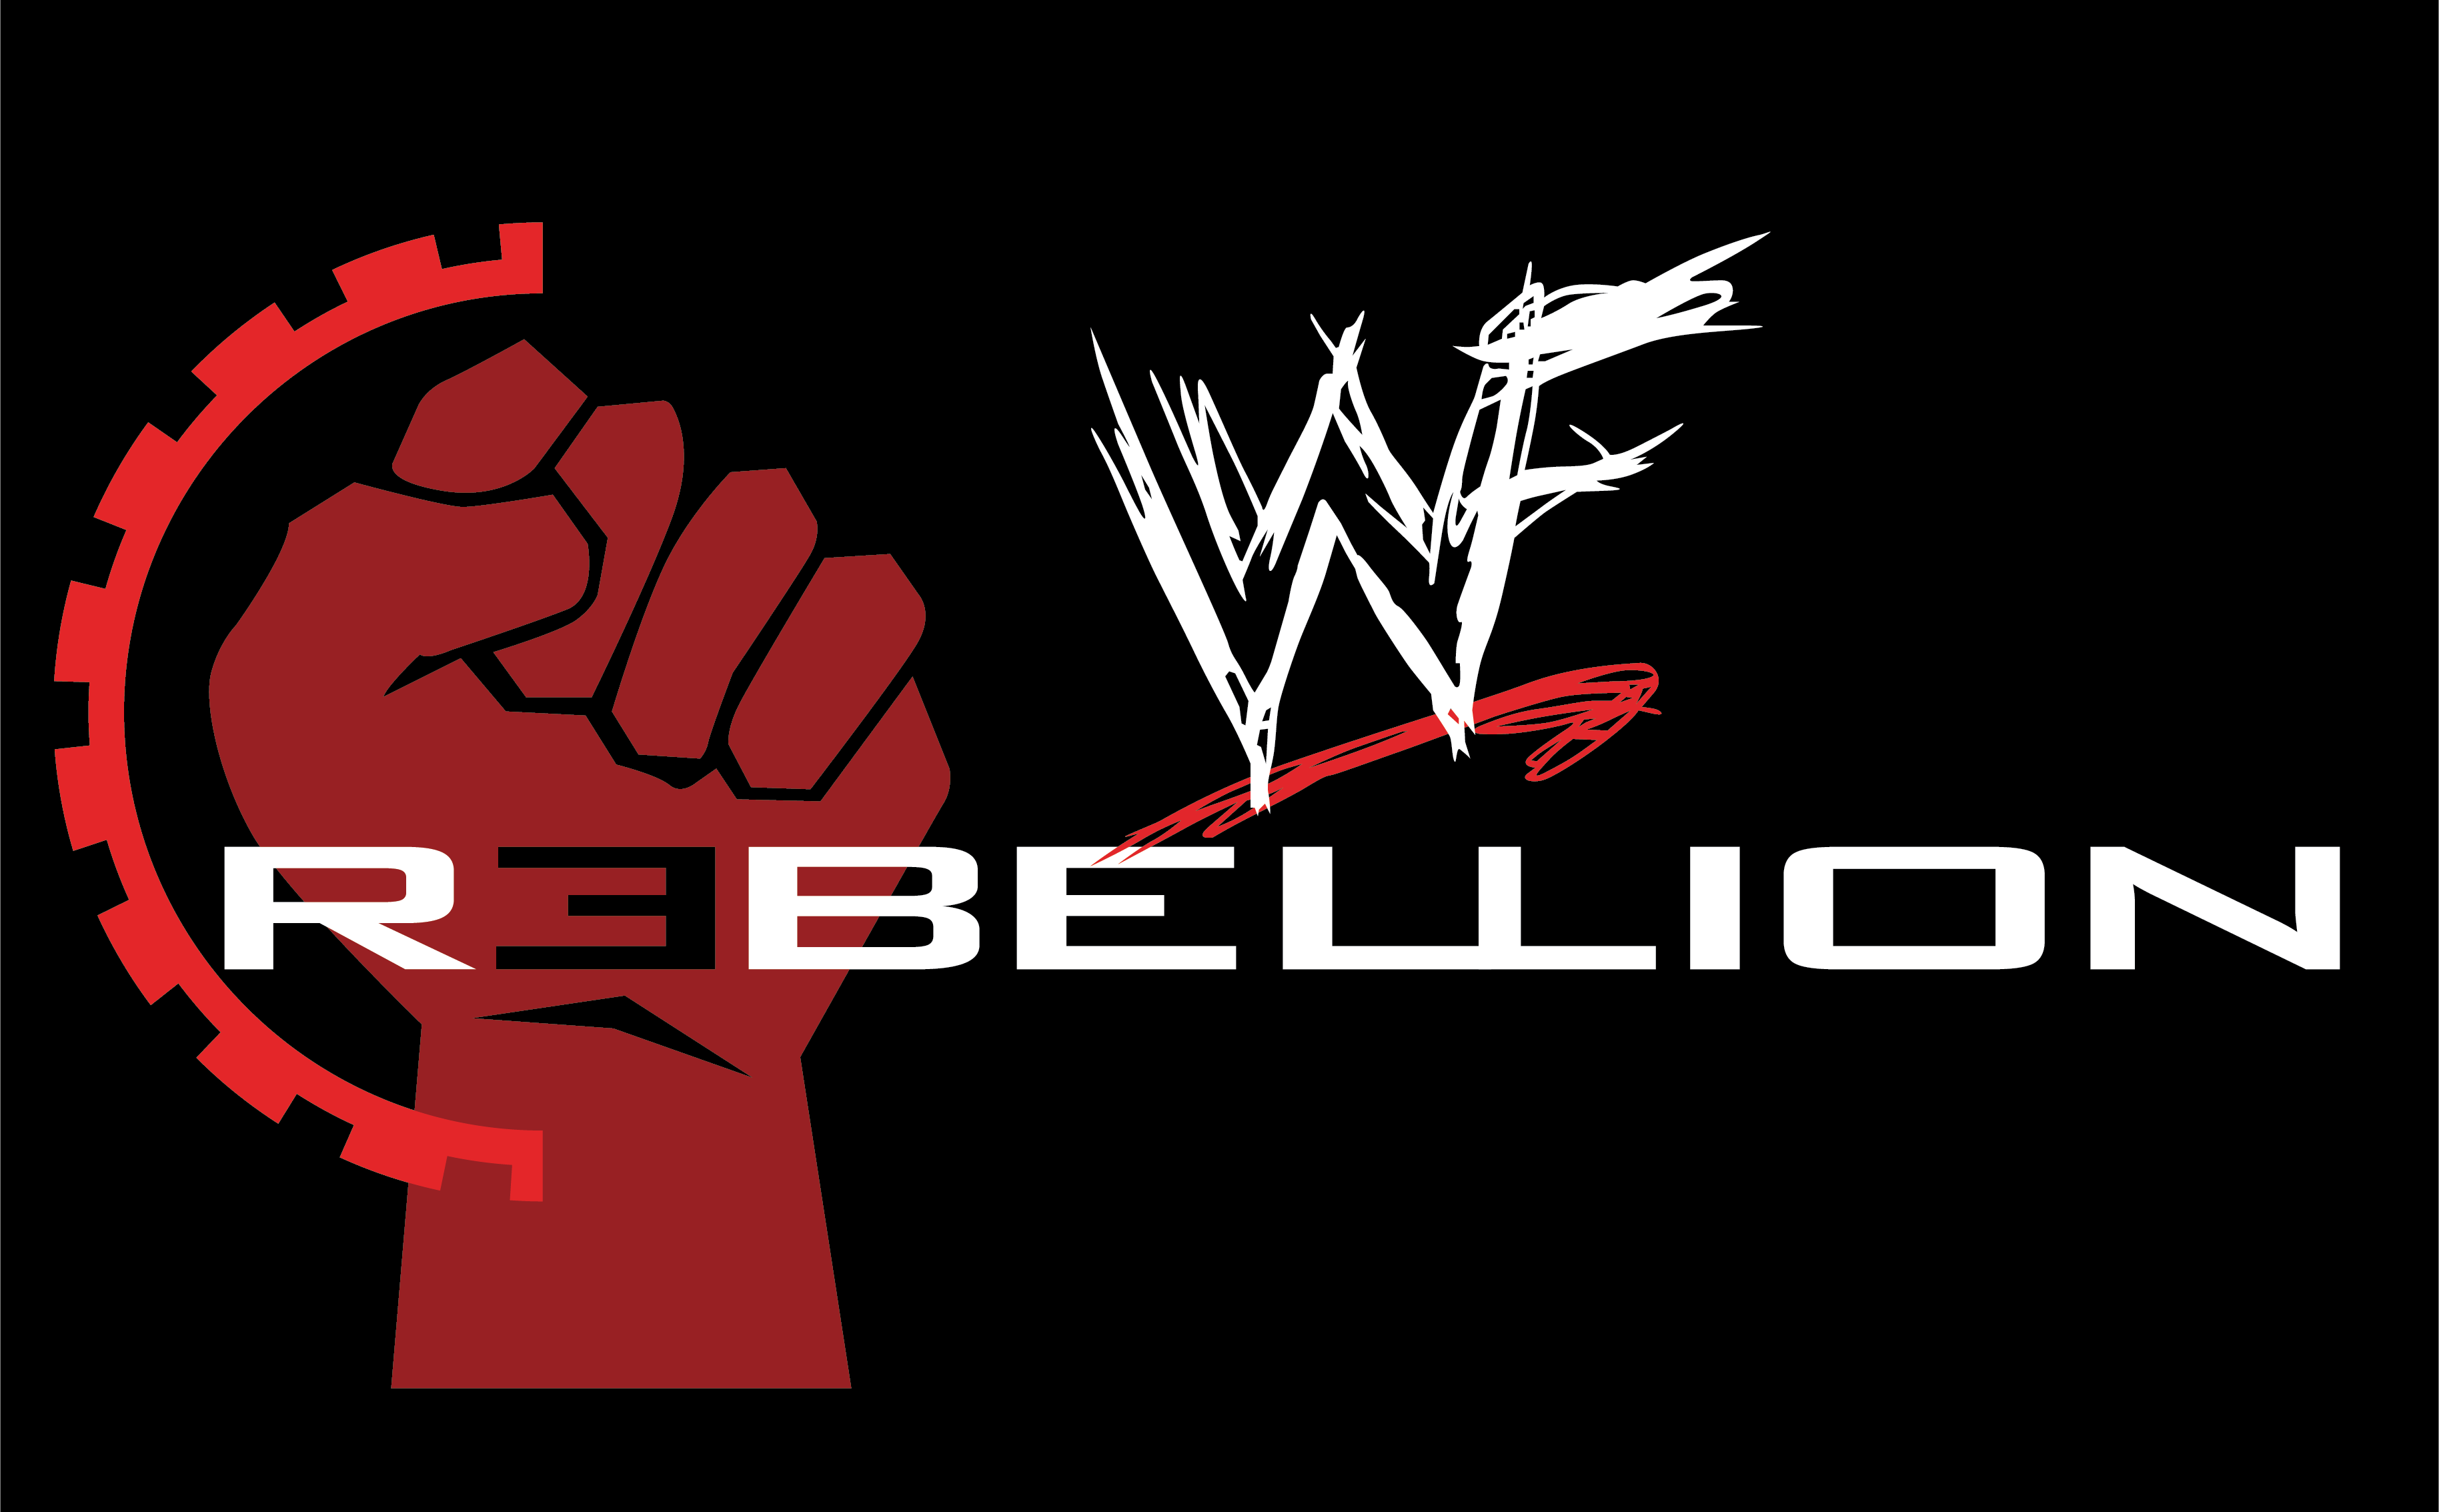 wwf rebellion logo by b1uechr1s on deviantart